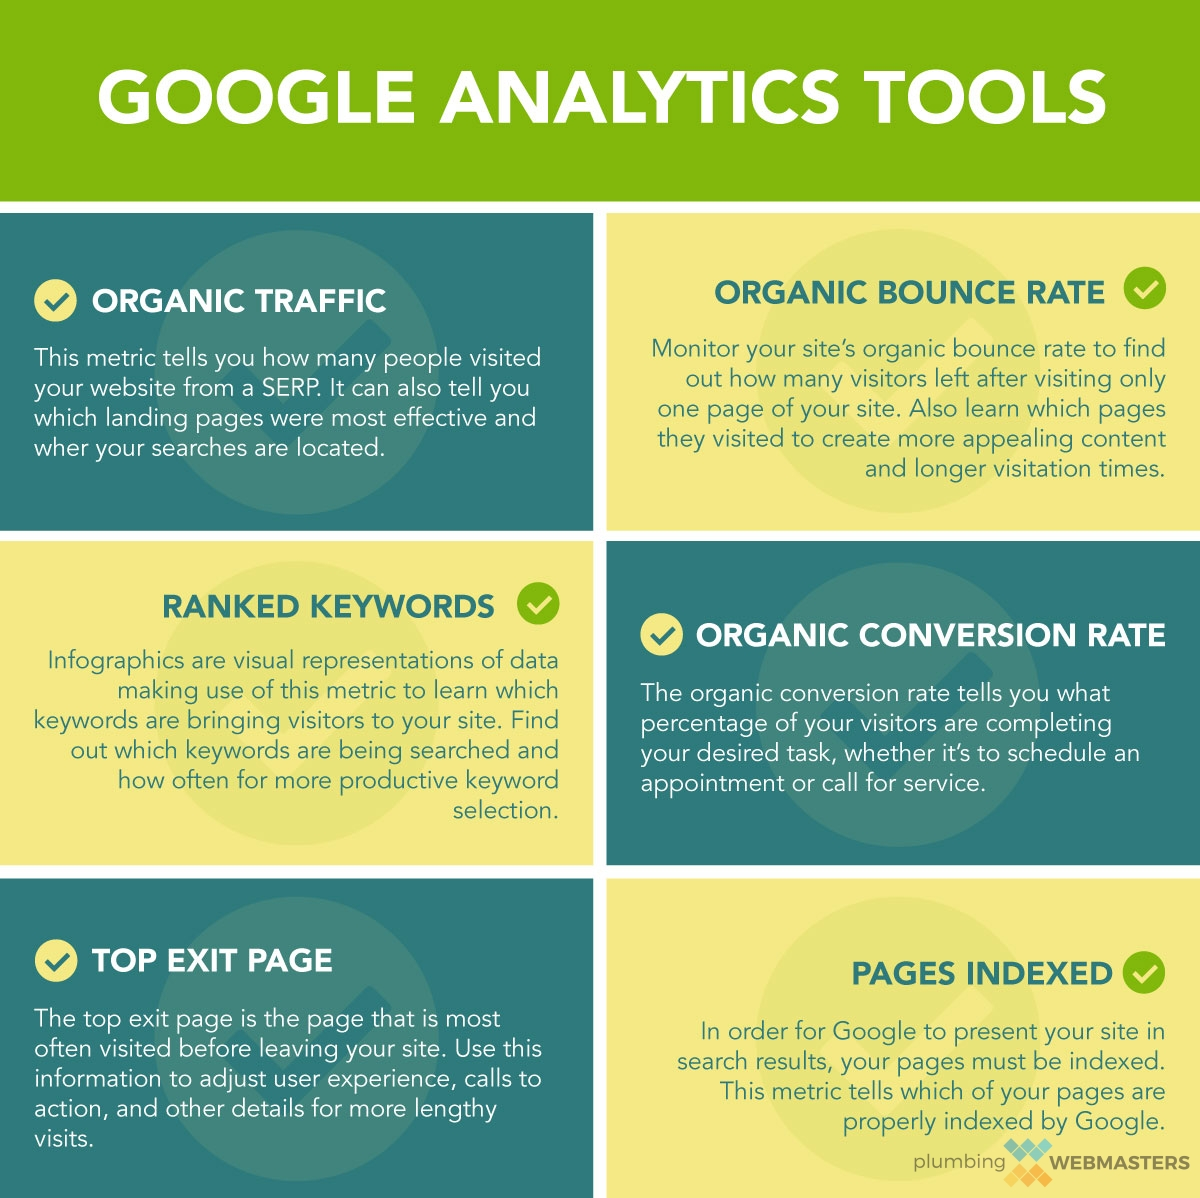 Metrics Offered by Google Analytics